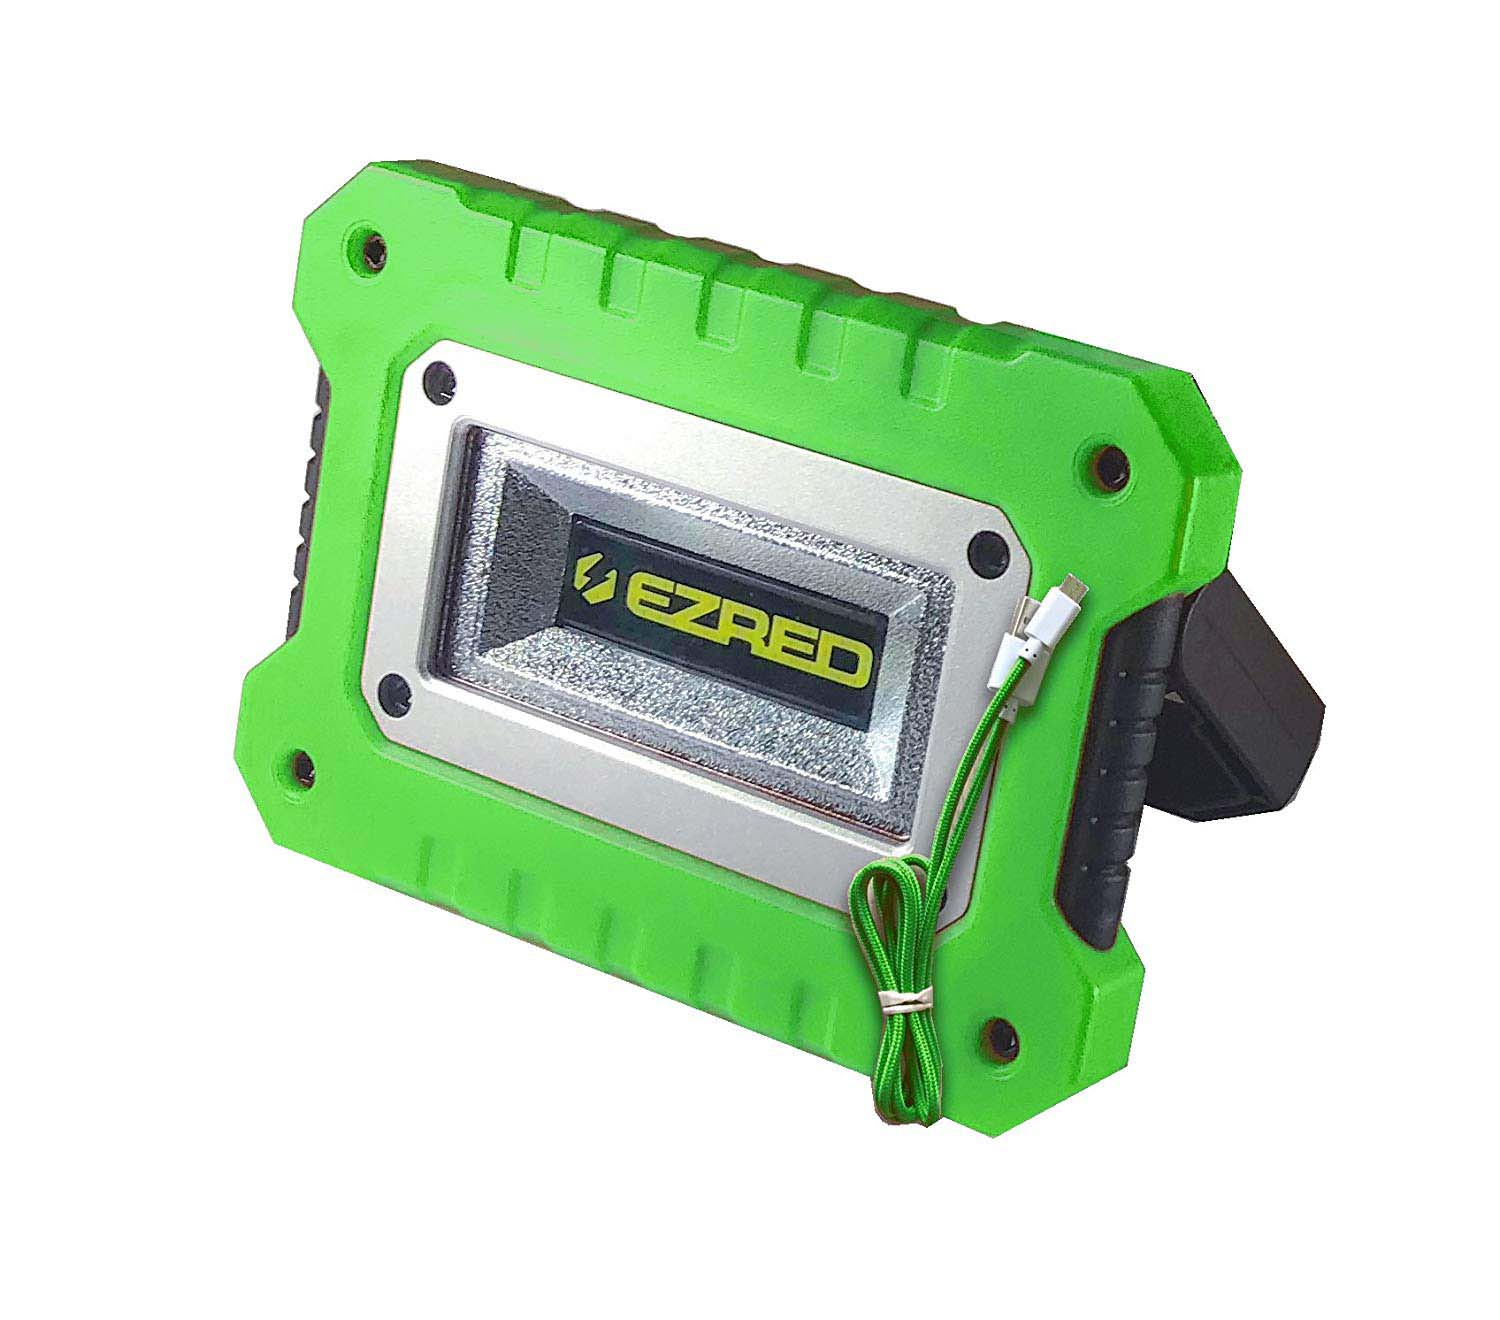 EZ RED Extreme Magnet Worklight Green Logo COB Color Box UHL-MAG & Micro-USB cord